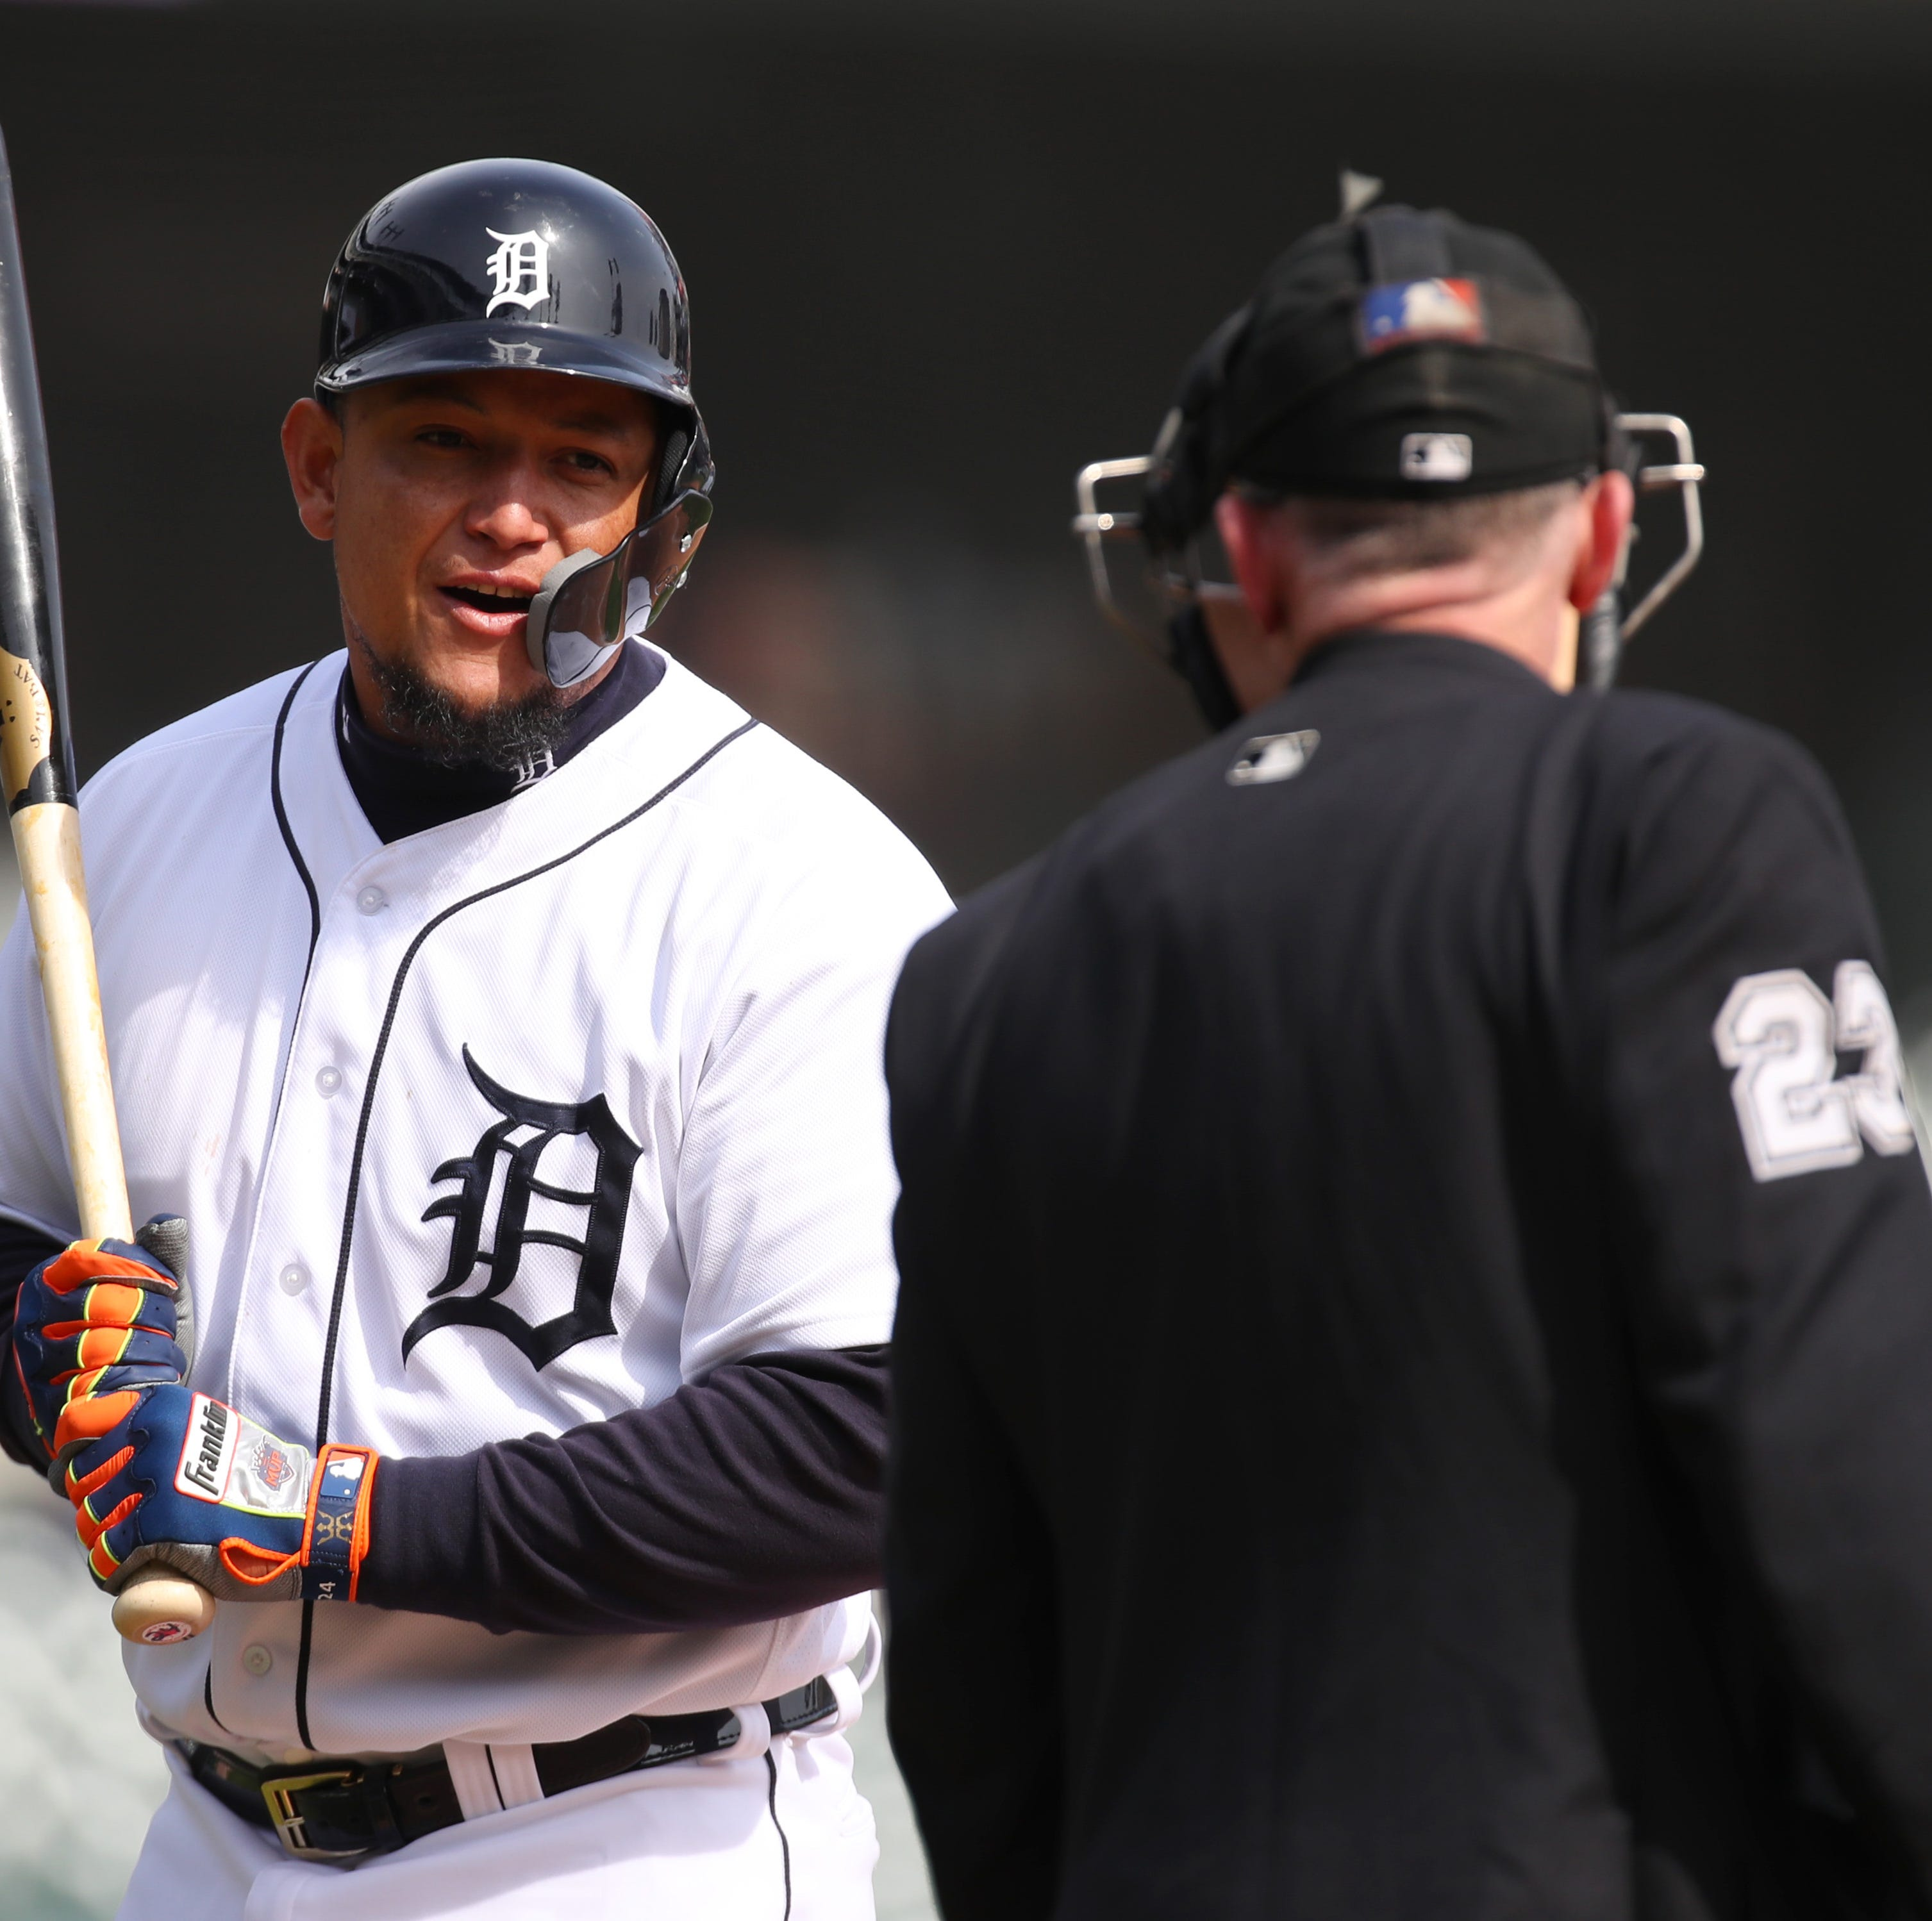 Detroit Tigers' bats go cold again in shutout by Cleveland Indians